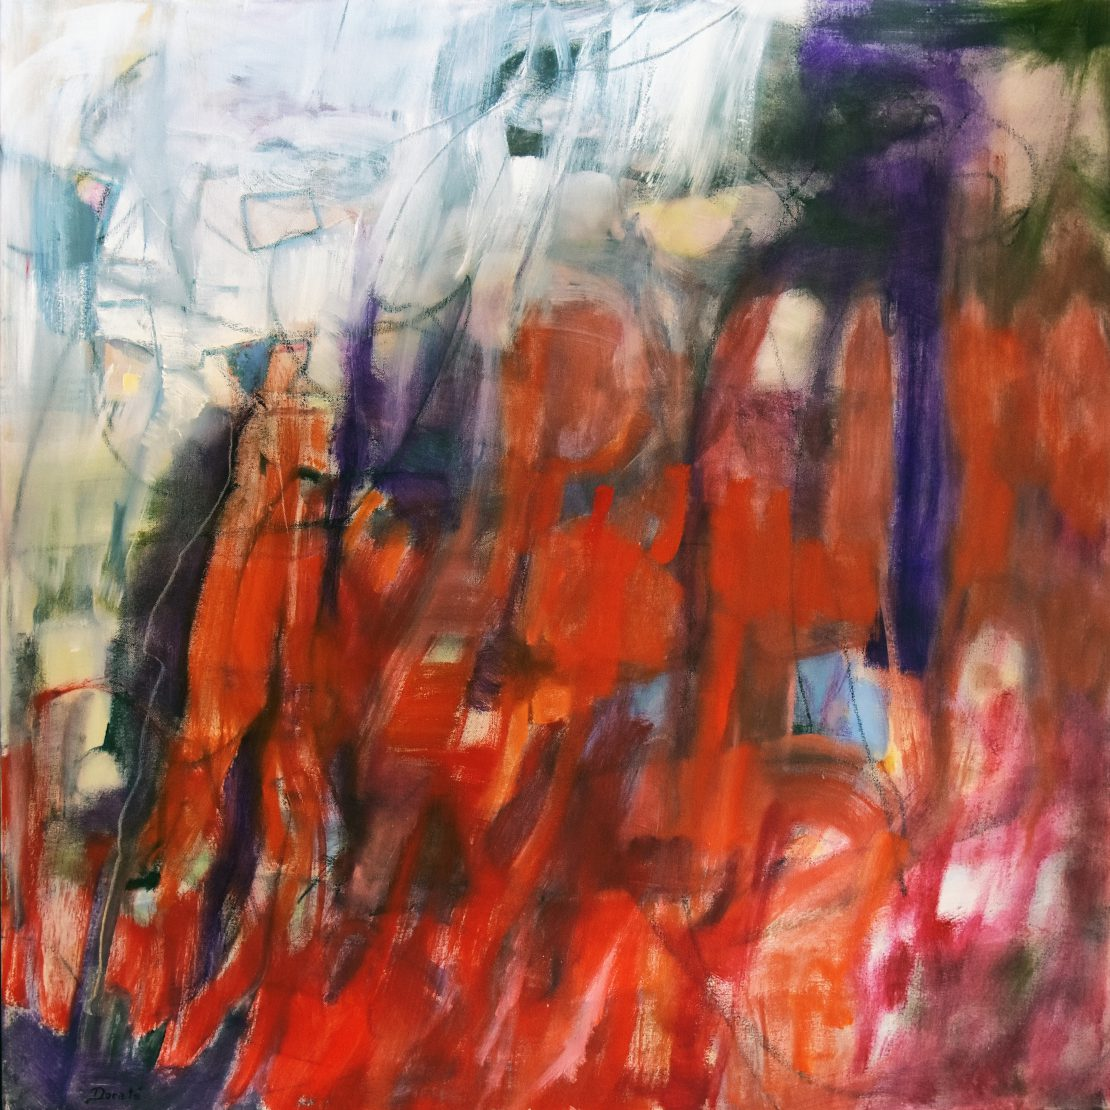 """Original Abstract Artwork by Dorate, """"Abstract Journey"""""""